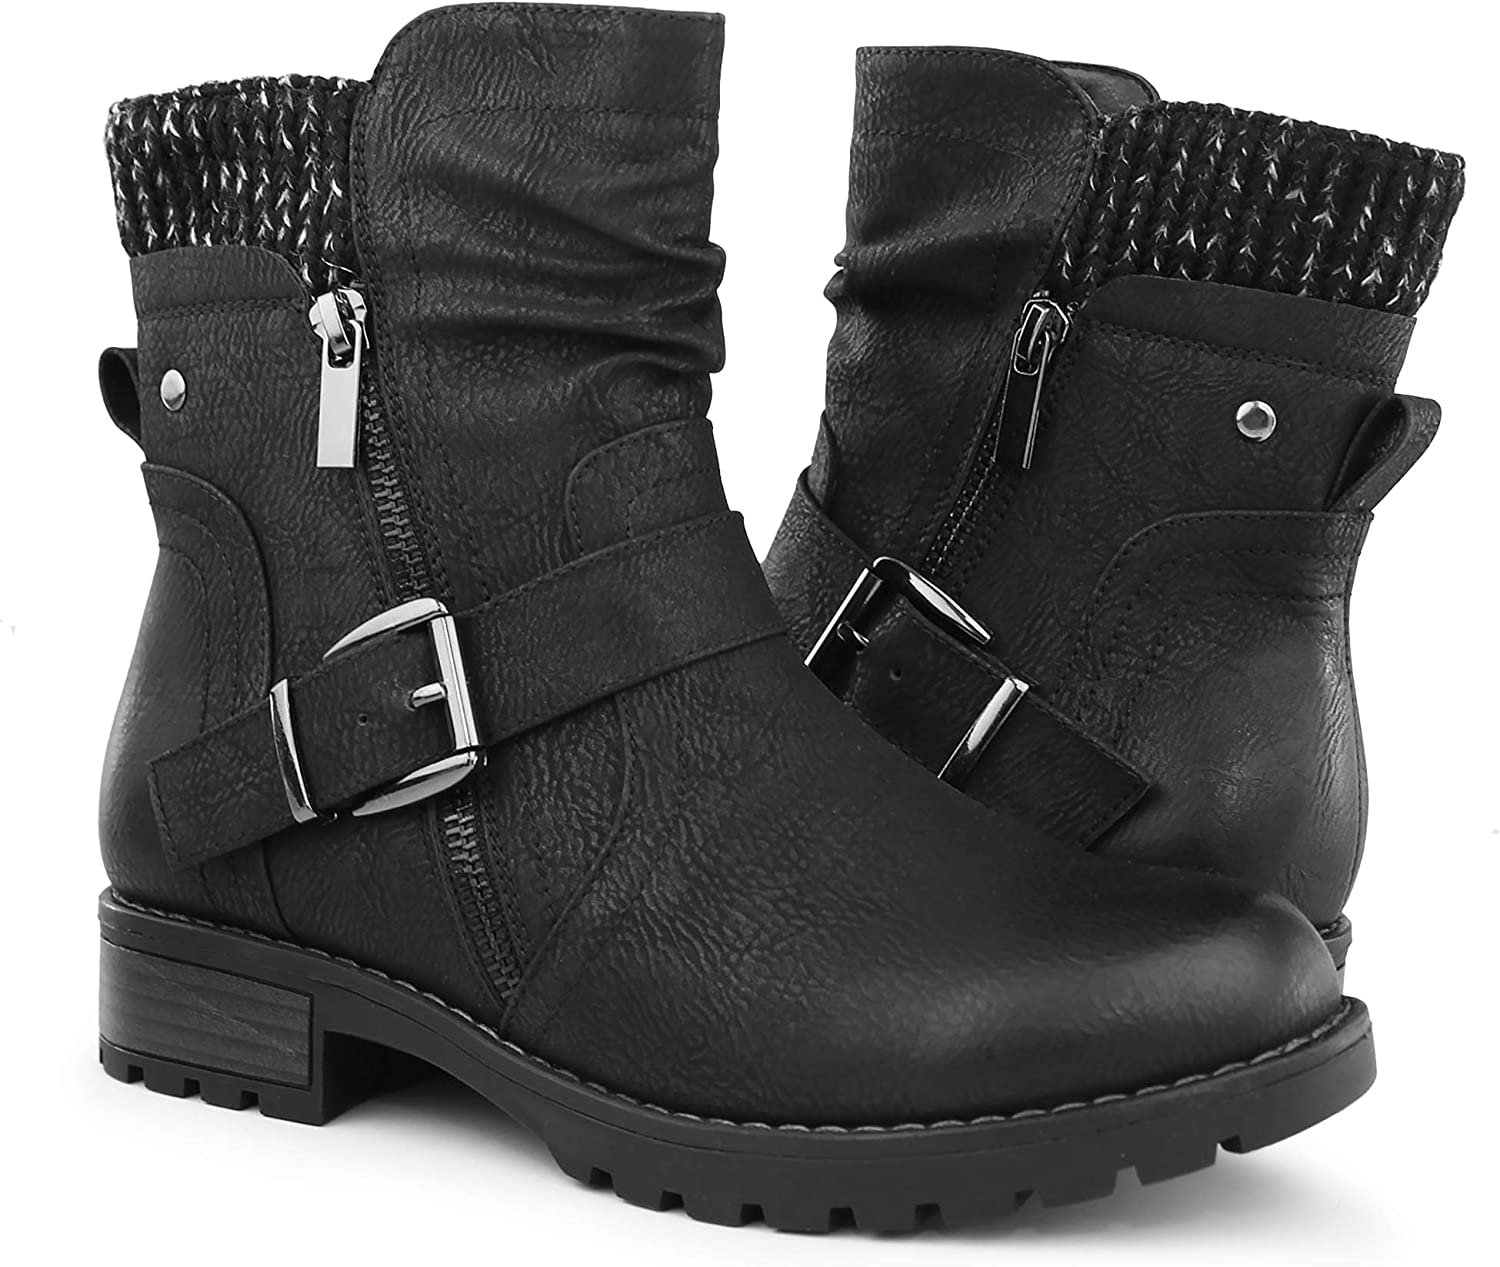 Hawkwell Women's Combat Boots Fashion Recommended Buckle Side Ankle B OFFicial store Zipper